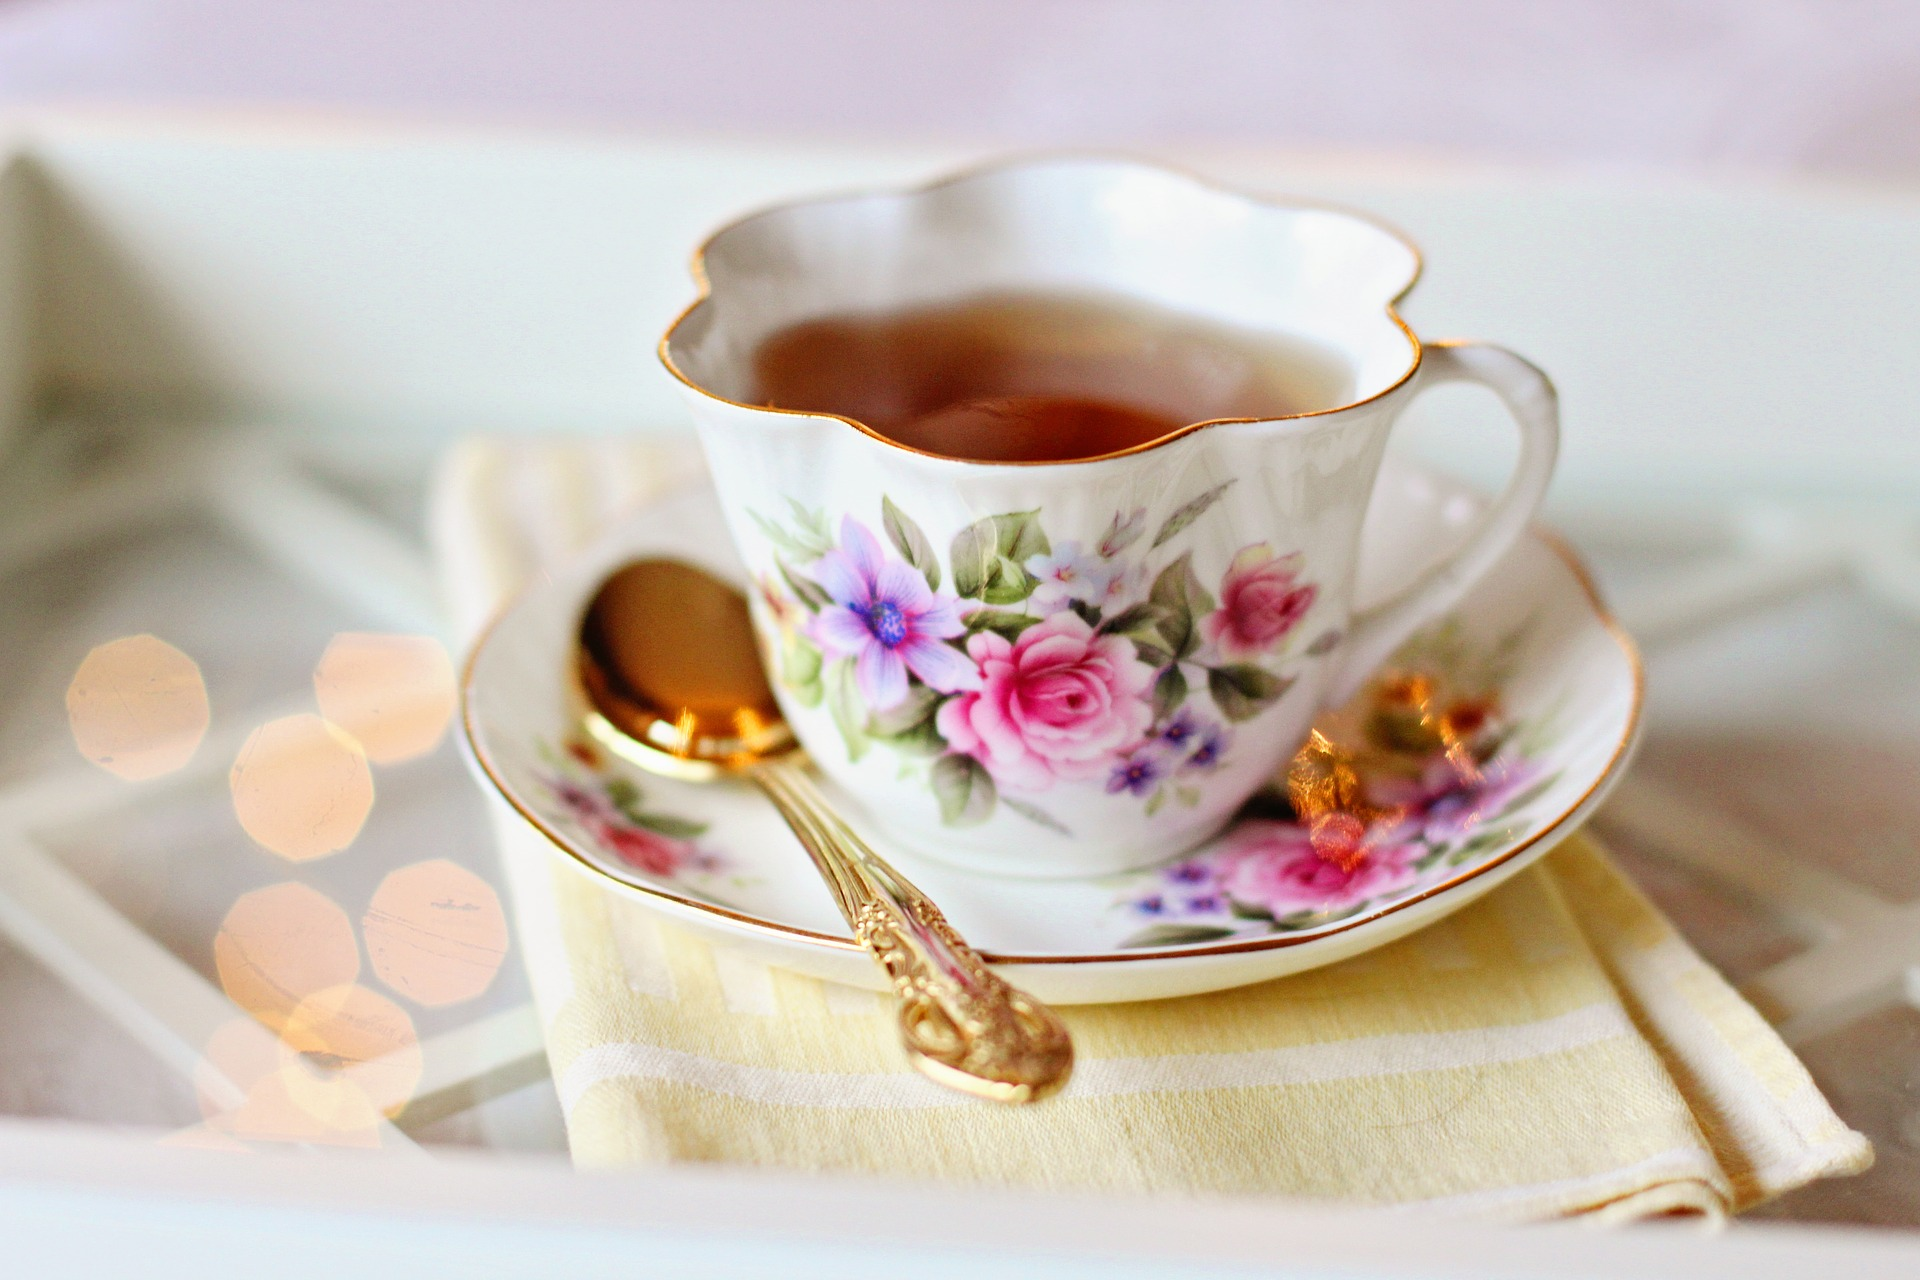 Join park friends group for 'Tea on the Terrace'. Pic: Pixabay